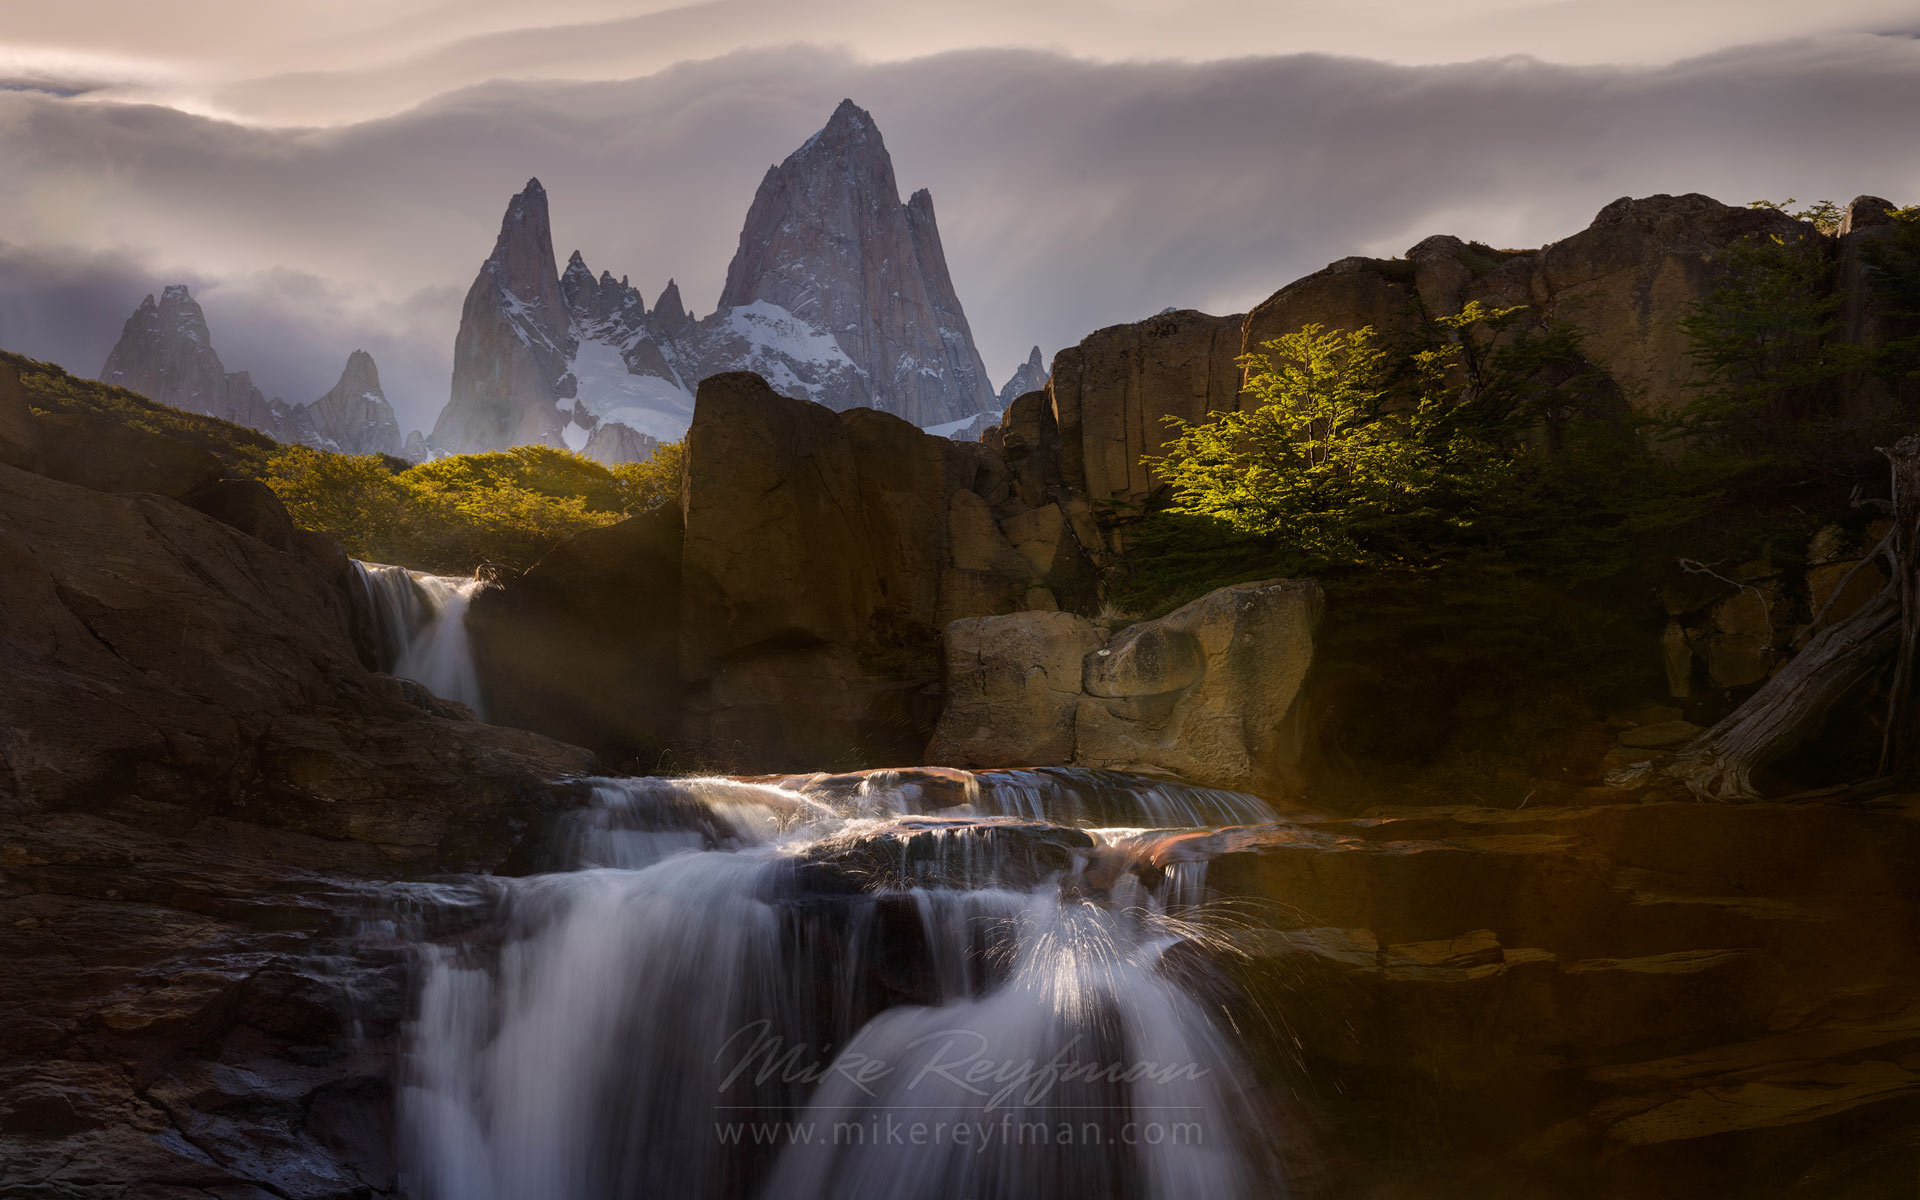 Light & Water Show. Waterfall on the Arroyo Del Salto River below Mount Fitzroy. Los Glaciares National Park, Patagonia, Argentina.   - Fitzroy-Cerro-Torre-Perito-Moreno-Patagonia-Argentina - Mike Reyfman Photography